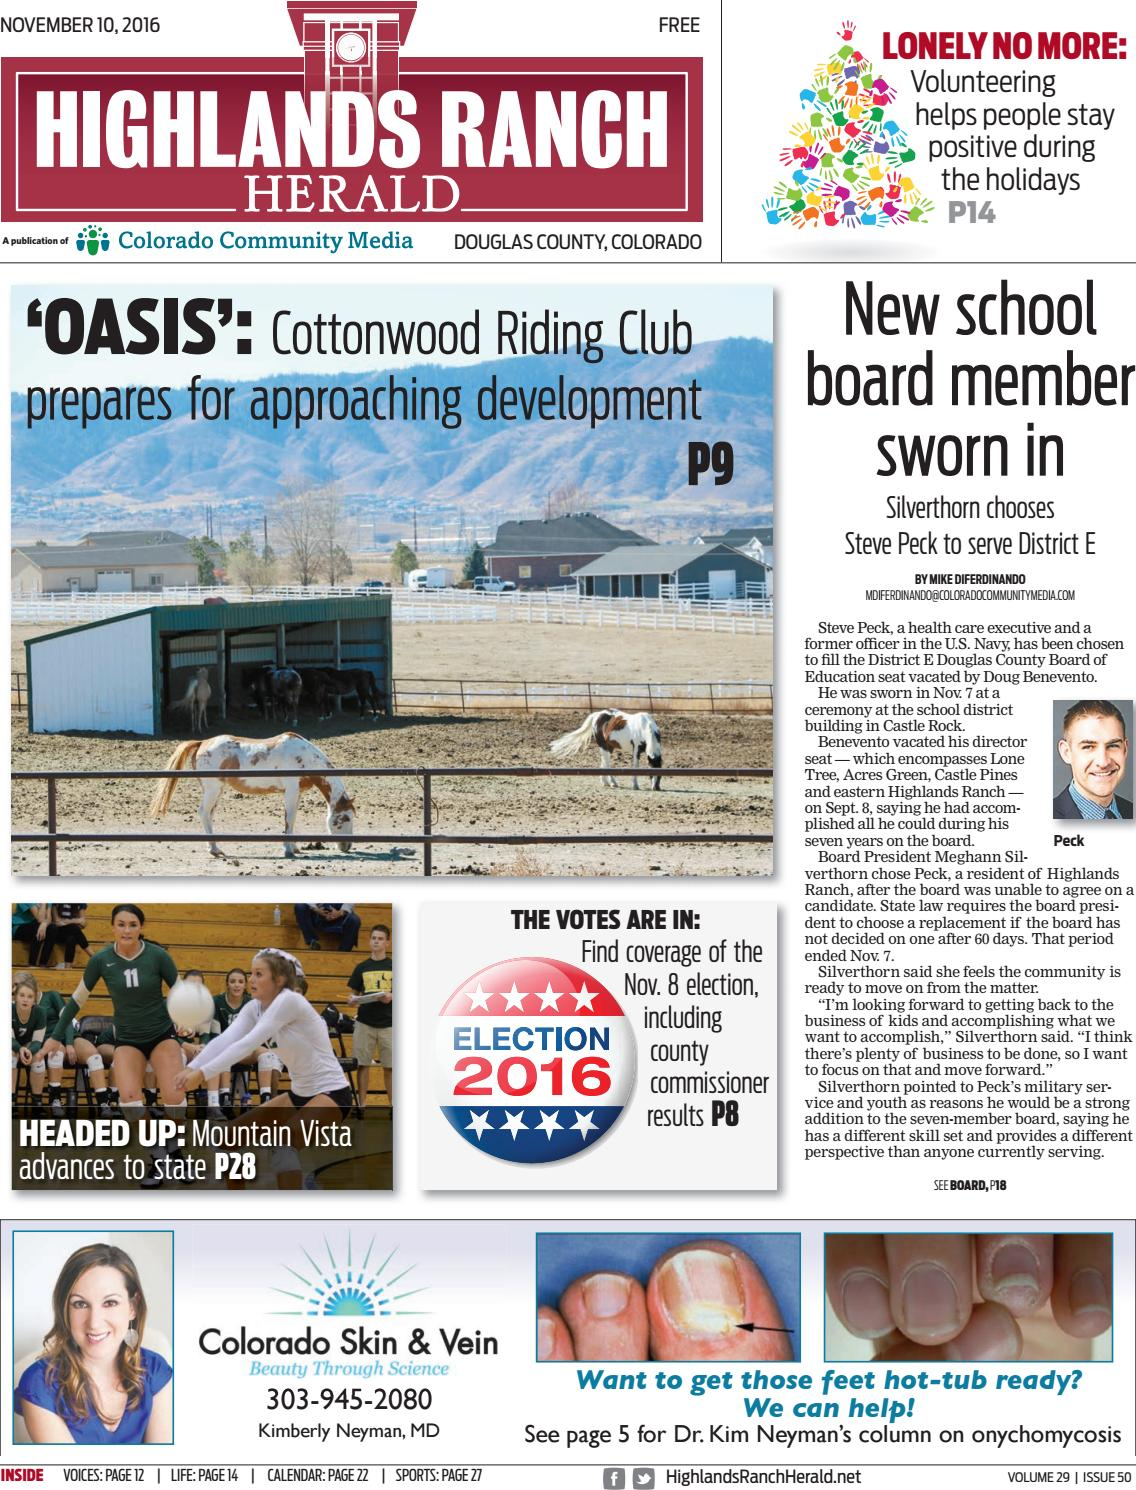 Highlands Ranch Herald 1110 by Colorado Community Media - issuu